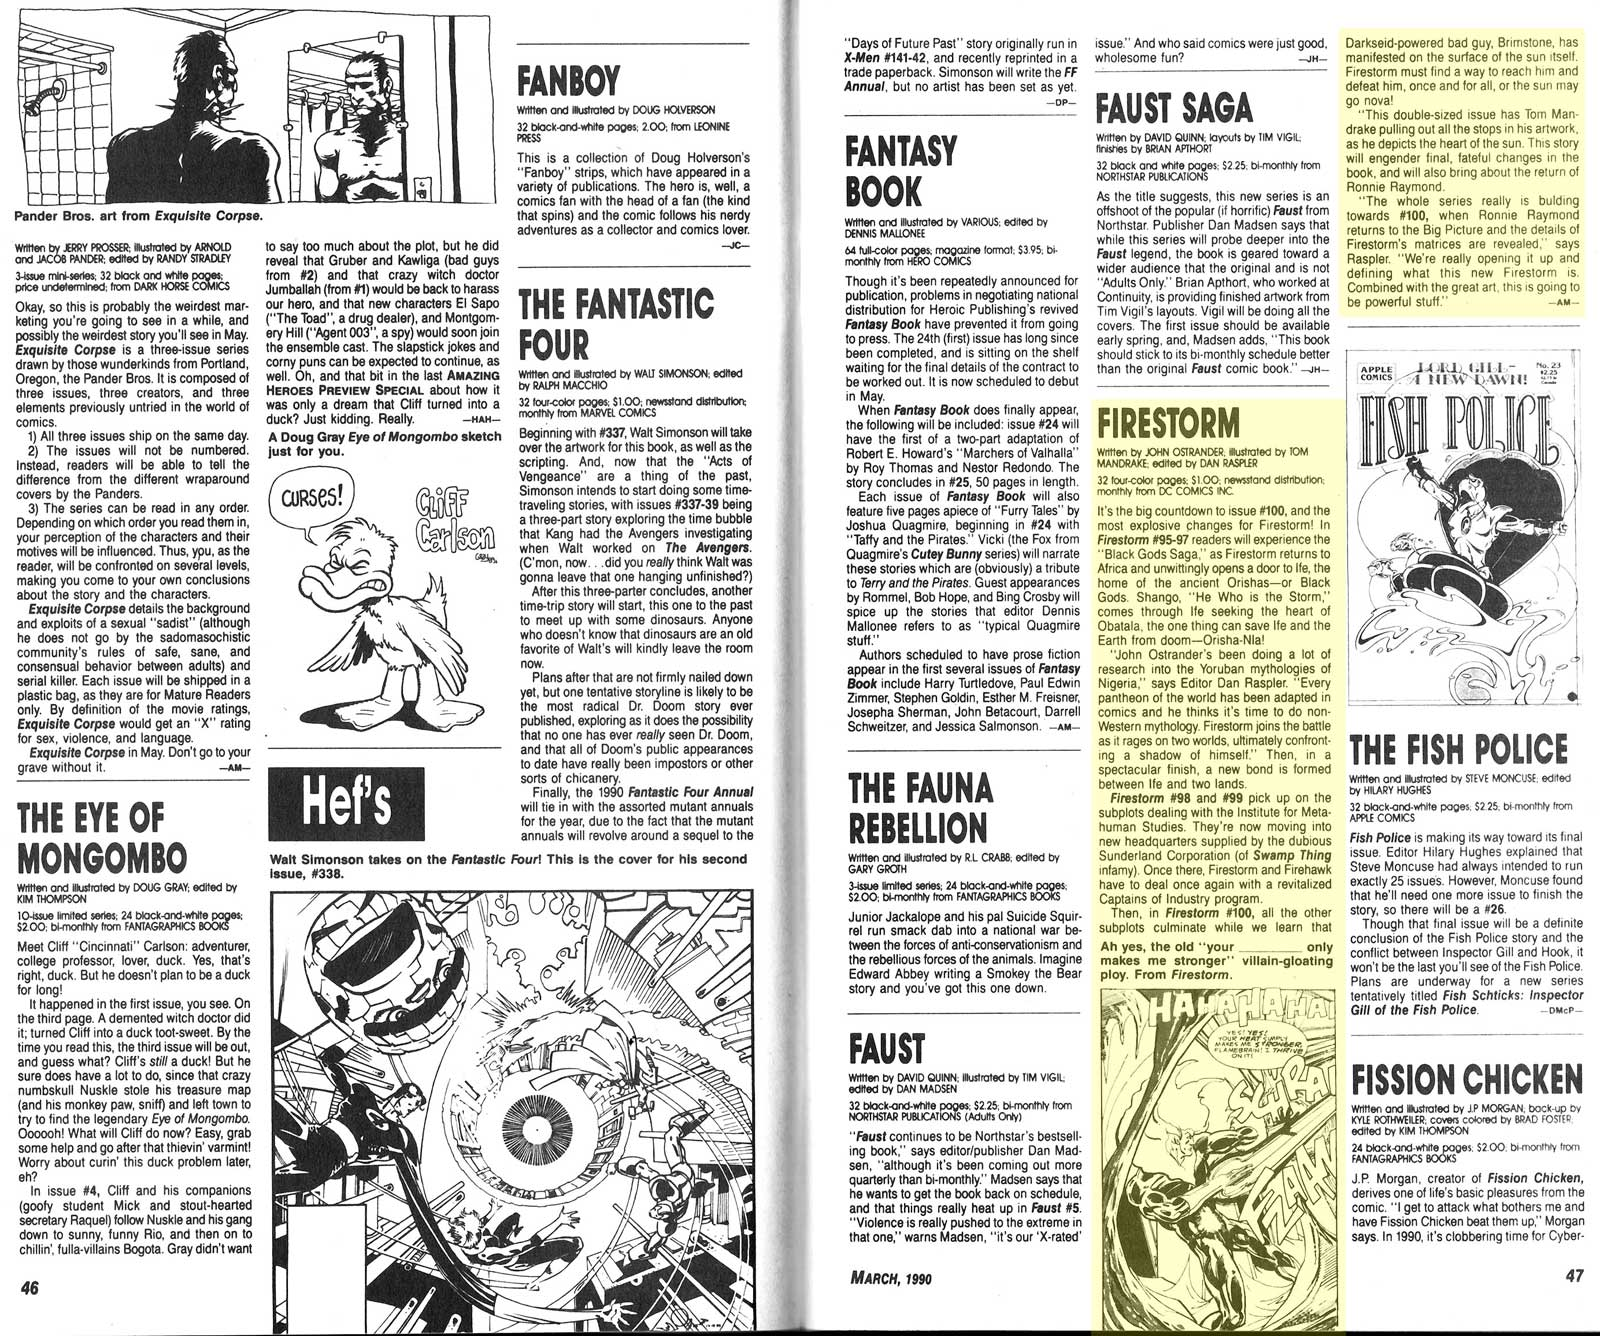 Amazing Heroes Preview Special #10 - March, 1990 - Firestorm